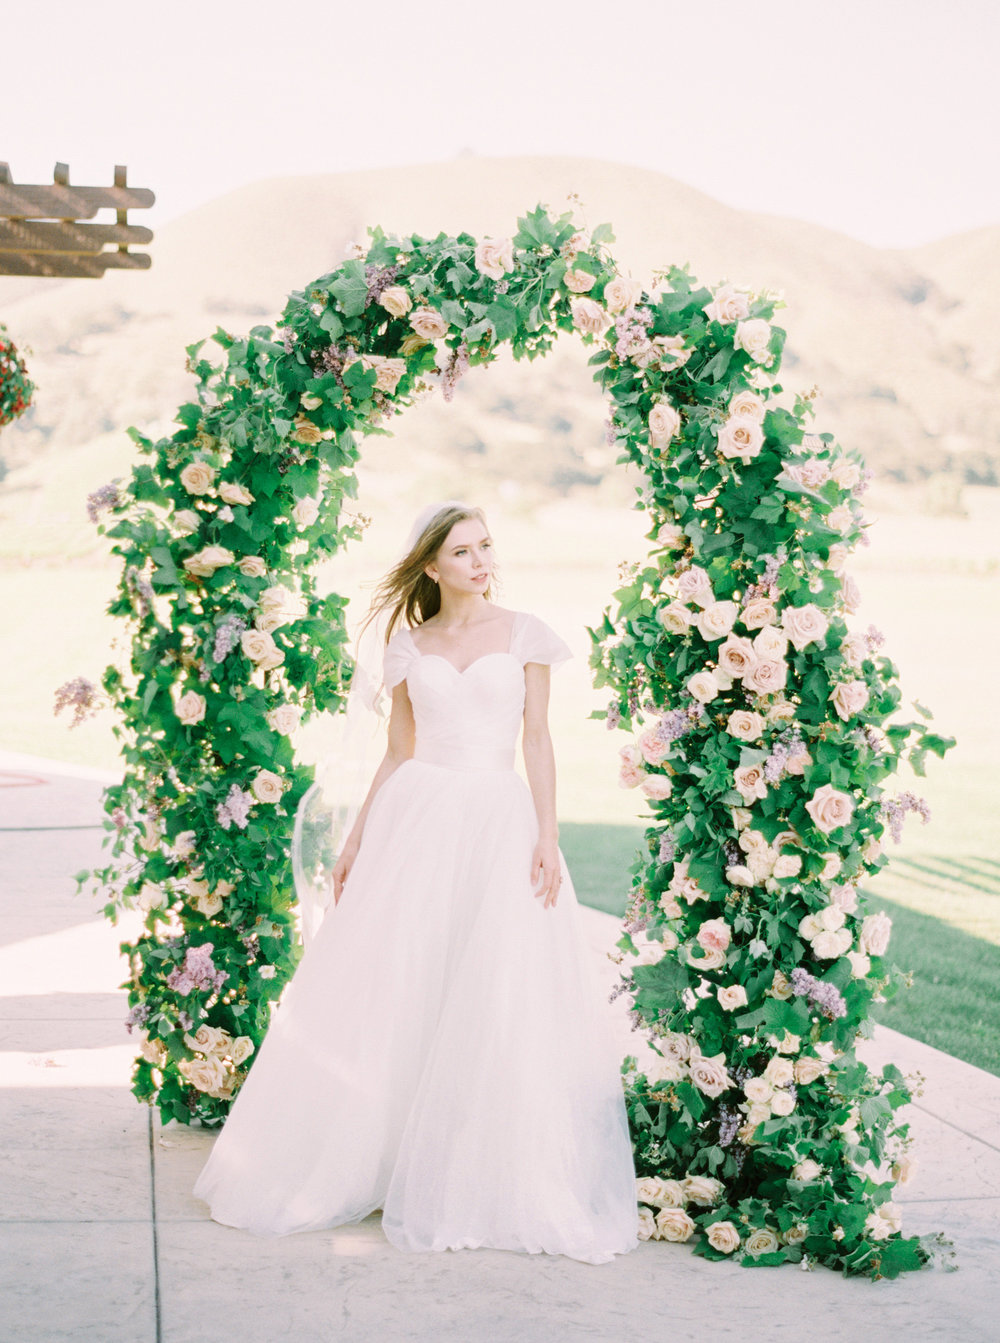 This-Love-of-Yours-Kirigin-Cellars-Flower-Arch-Styled-Shoot-108.jpg